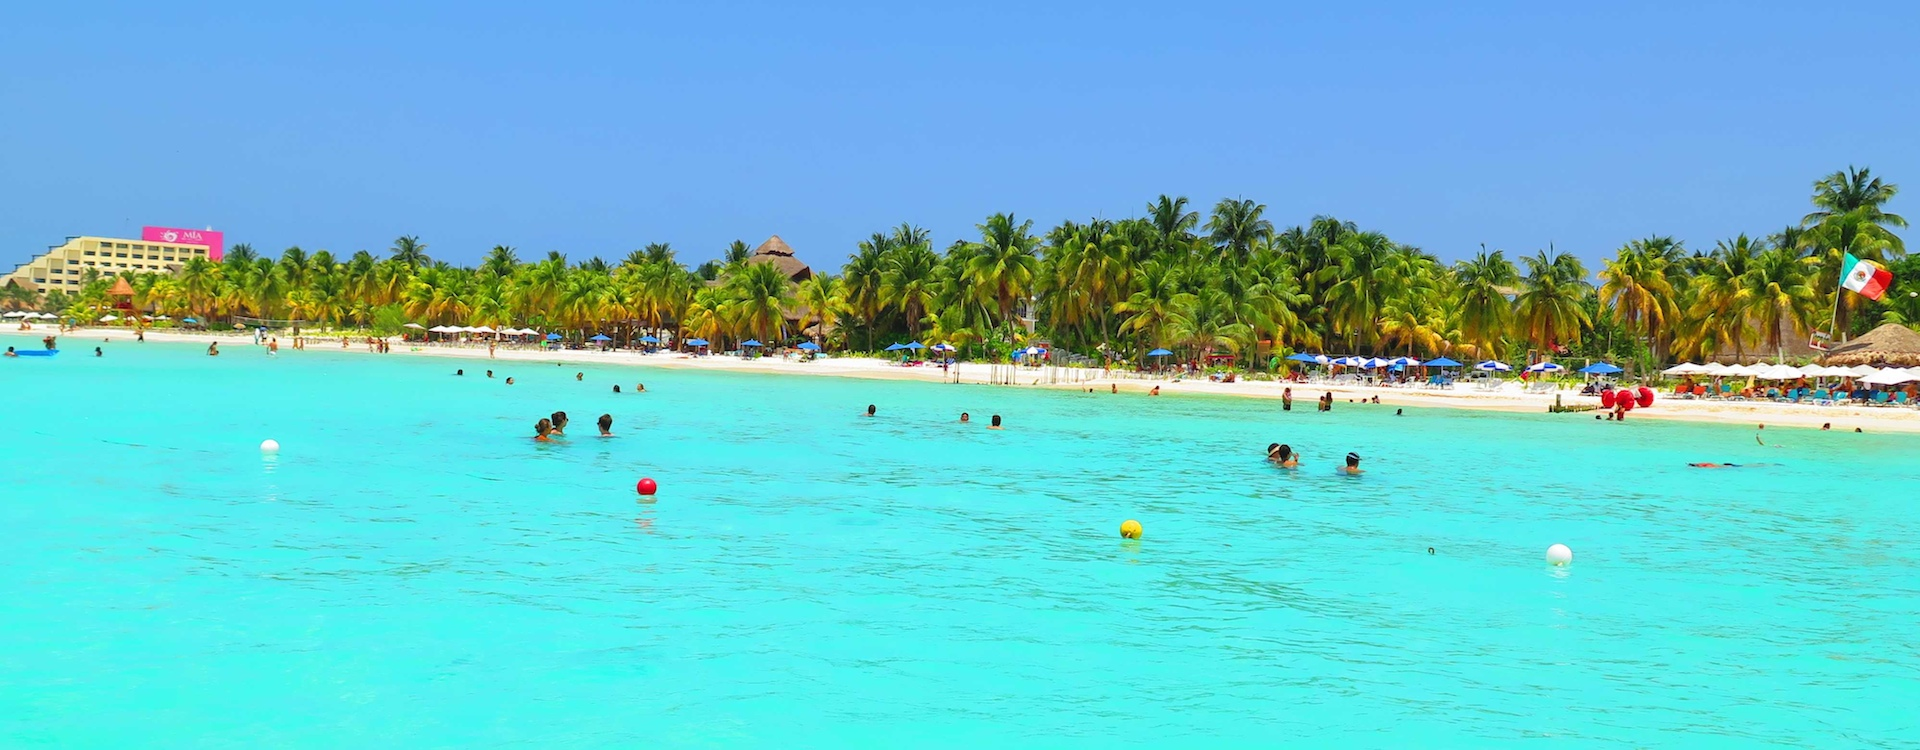 Photo courtesy of: everythingislamujeres.com